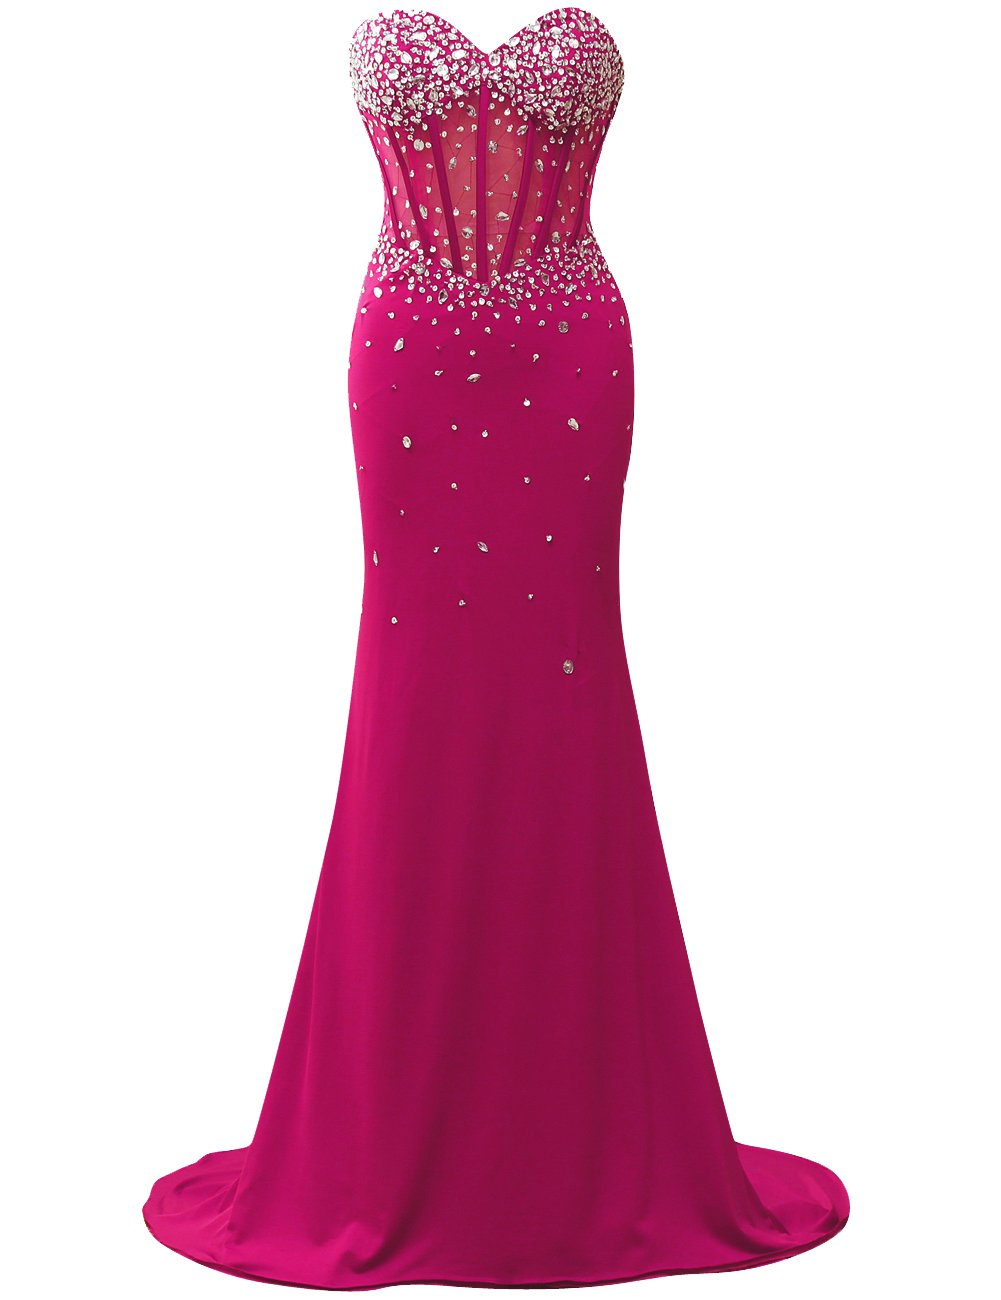 JAEDEN Sweetheart Corset Style Bodice Strapless Crystals Evening Gown Prom Dress Hot Pink US16W by JAEDEN